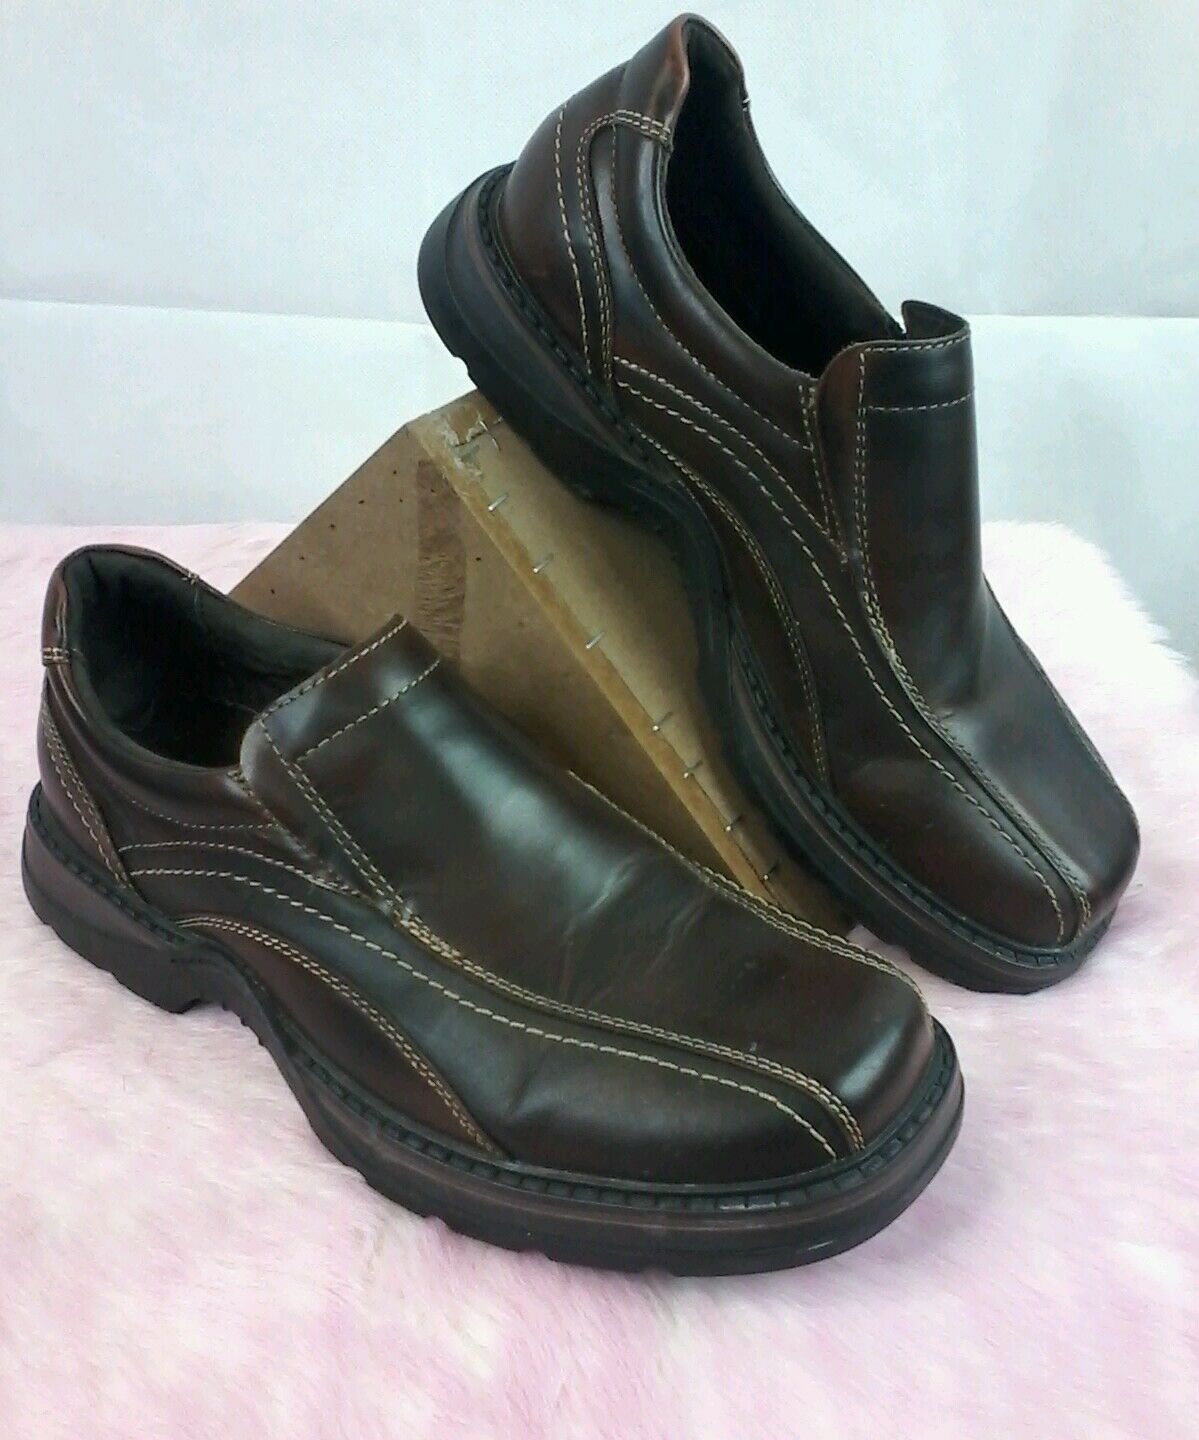 fe29ccd39fe Aldo Loafers Brown Leather Mens Size 8.5 s144. Sentencing Policy · Propet  Walking shoes ...